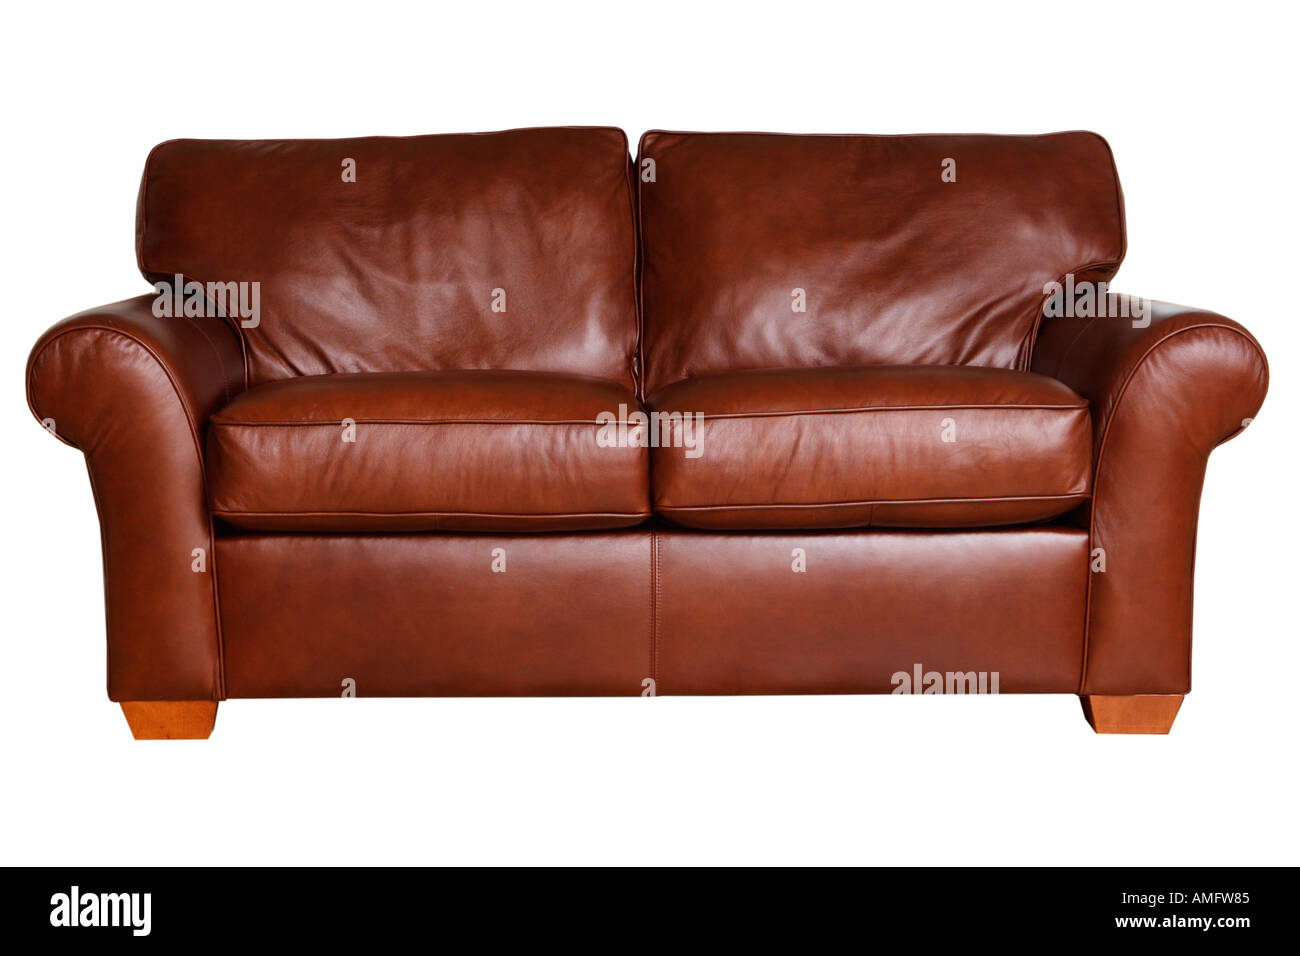 leather couch - Stock Image